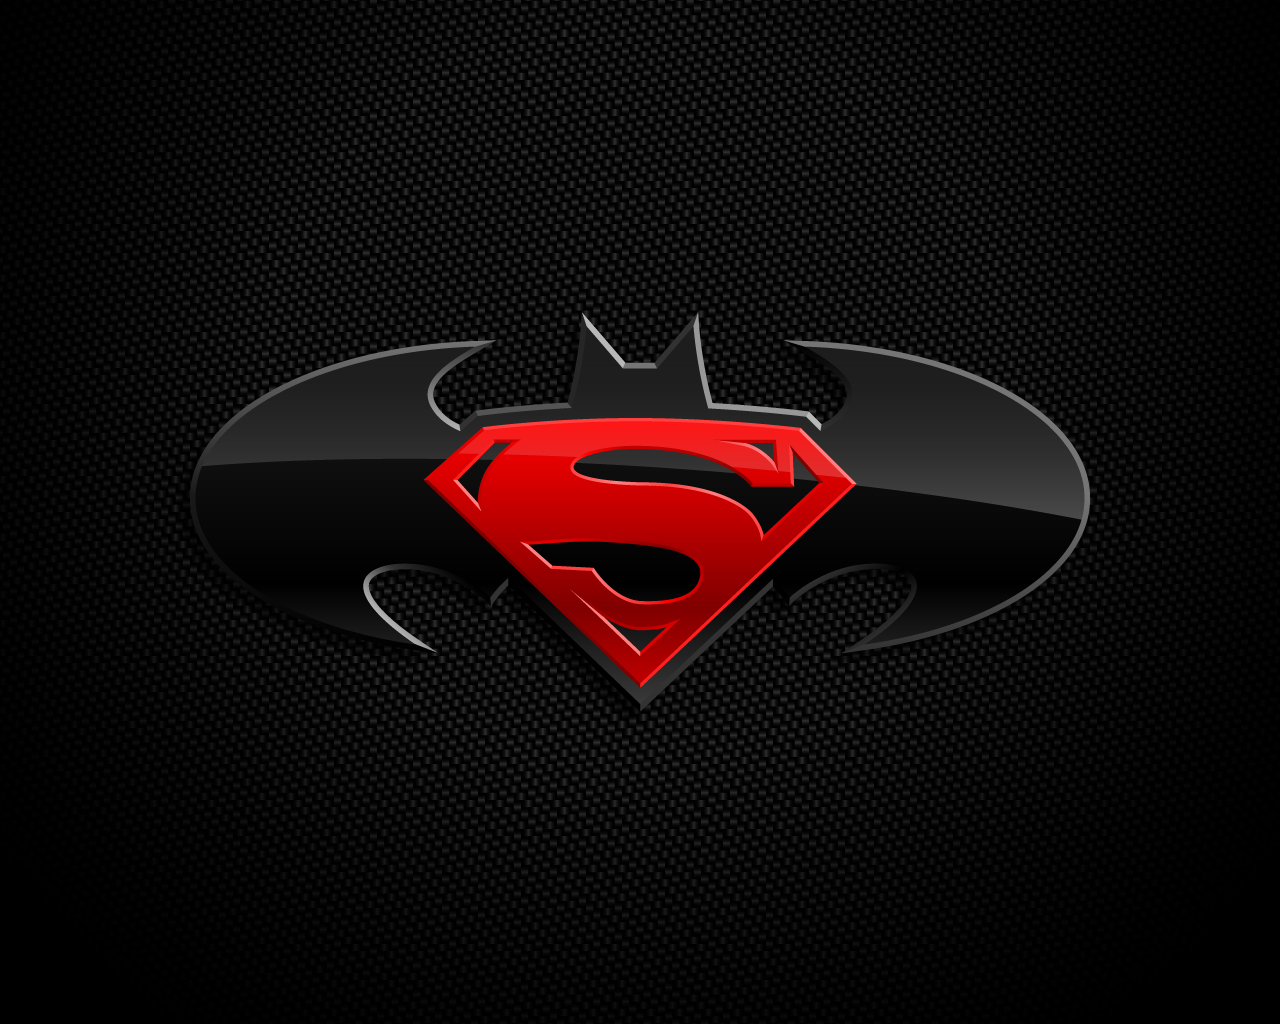 Download HD wallpapers of Superman 1280x1024